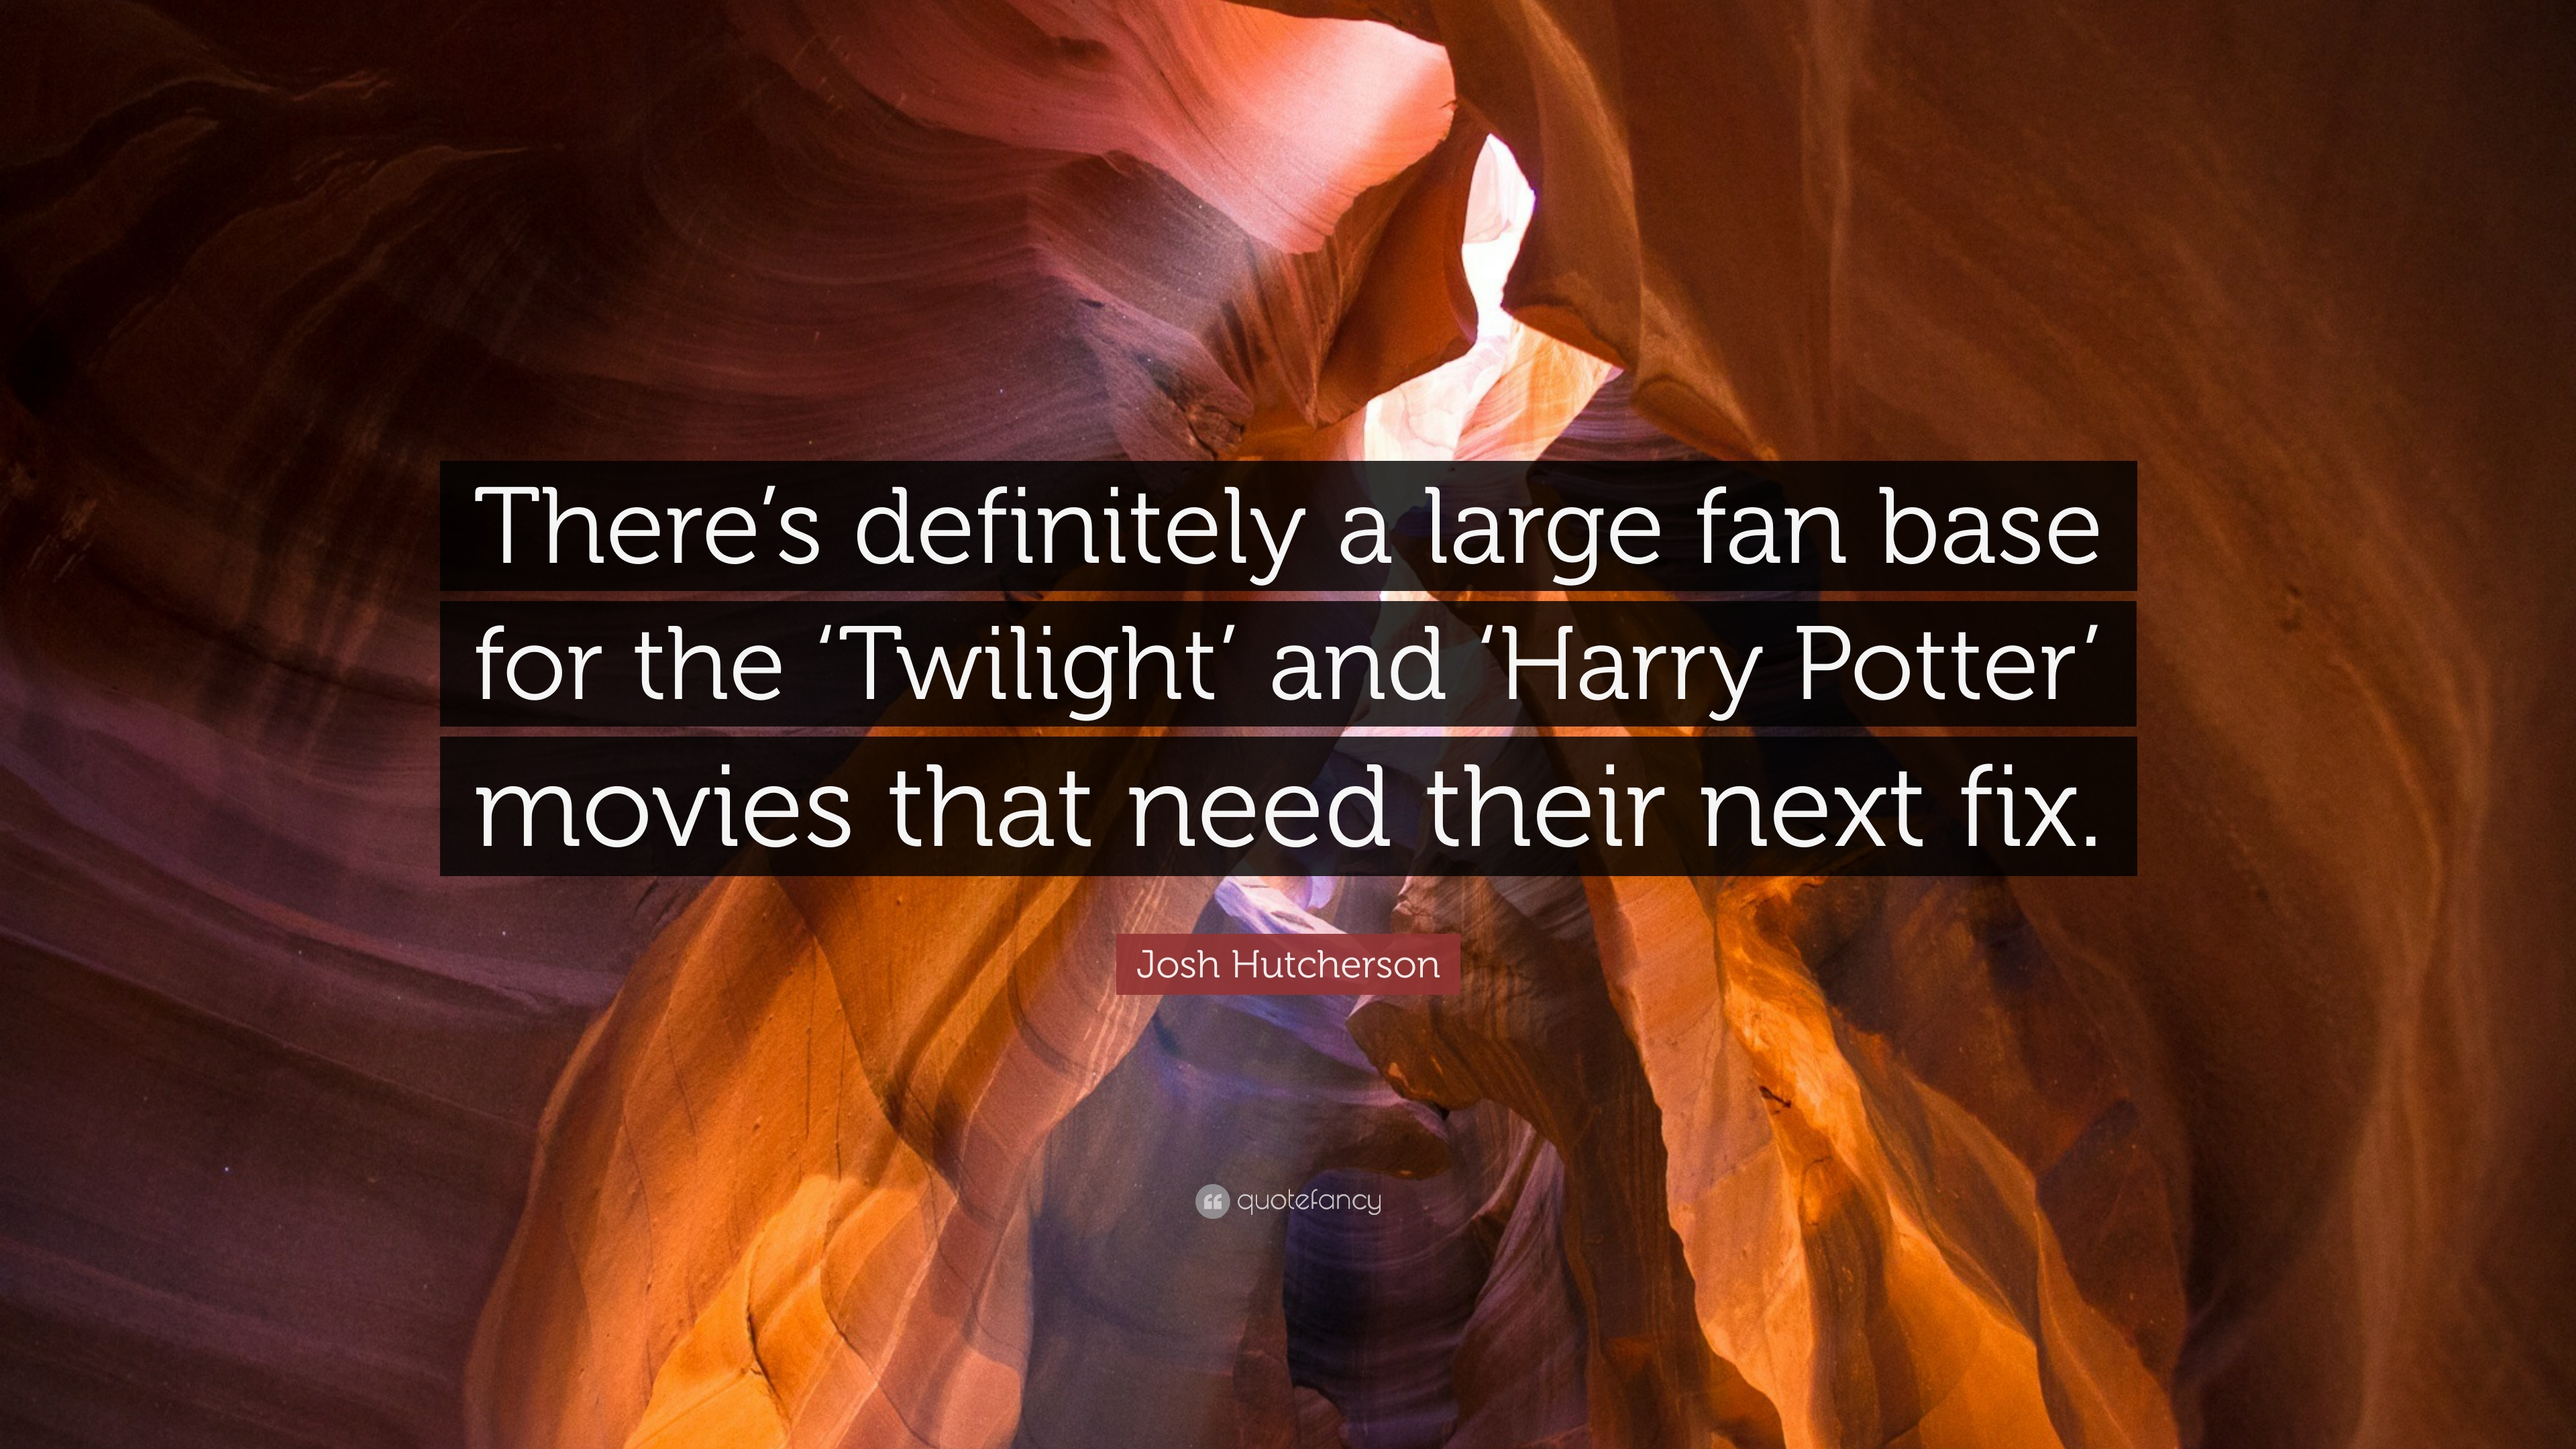 Josh Hutcherson Quote There S Definitely A Large Fan Base For The Twilight And Harry Potter Movies That Need Their Next Fix 7 Wallpapers Quotefancy Watch online josh potter movies for free without registration or downloading on 1234movies new 2019 site. quotefancy